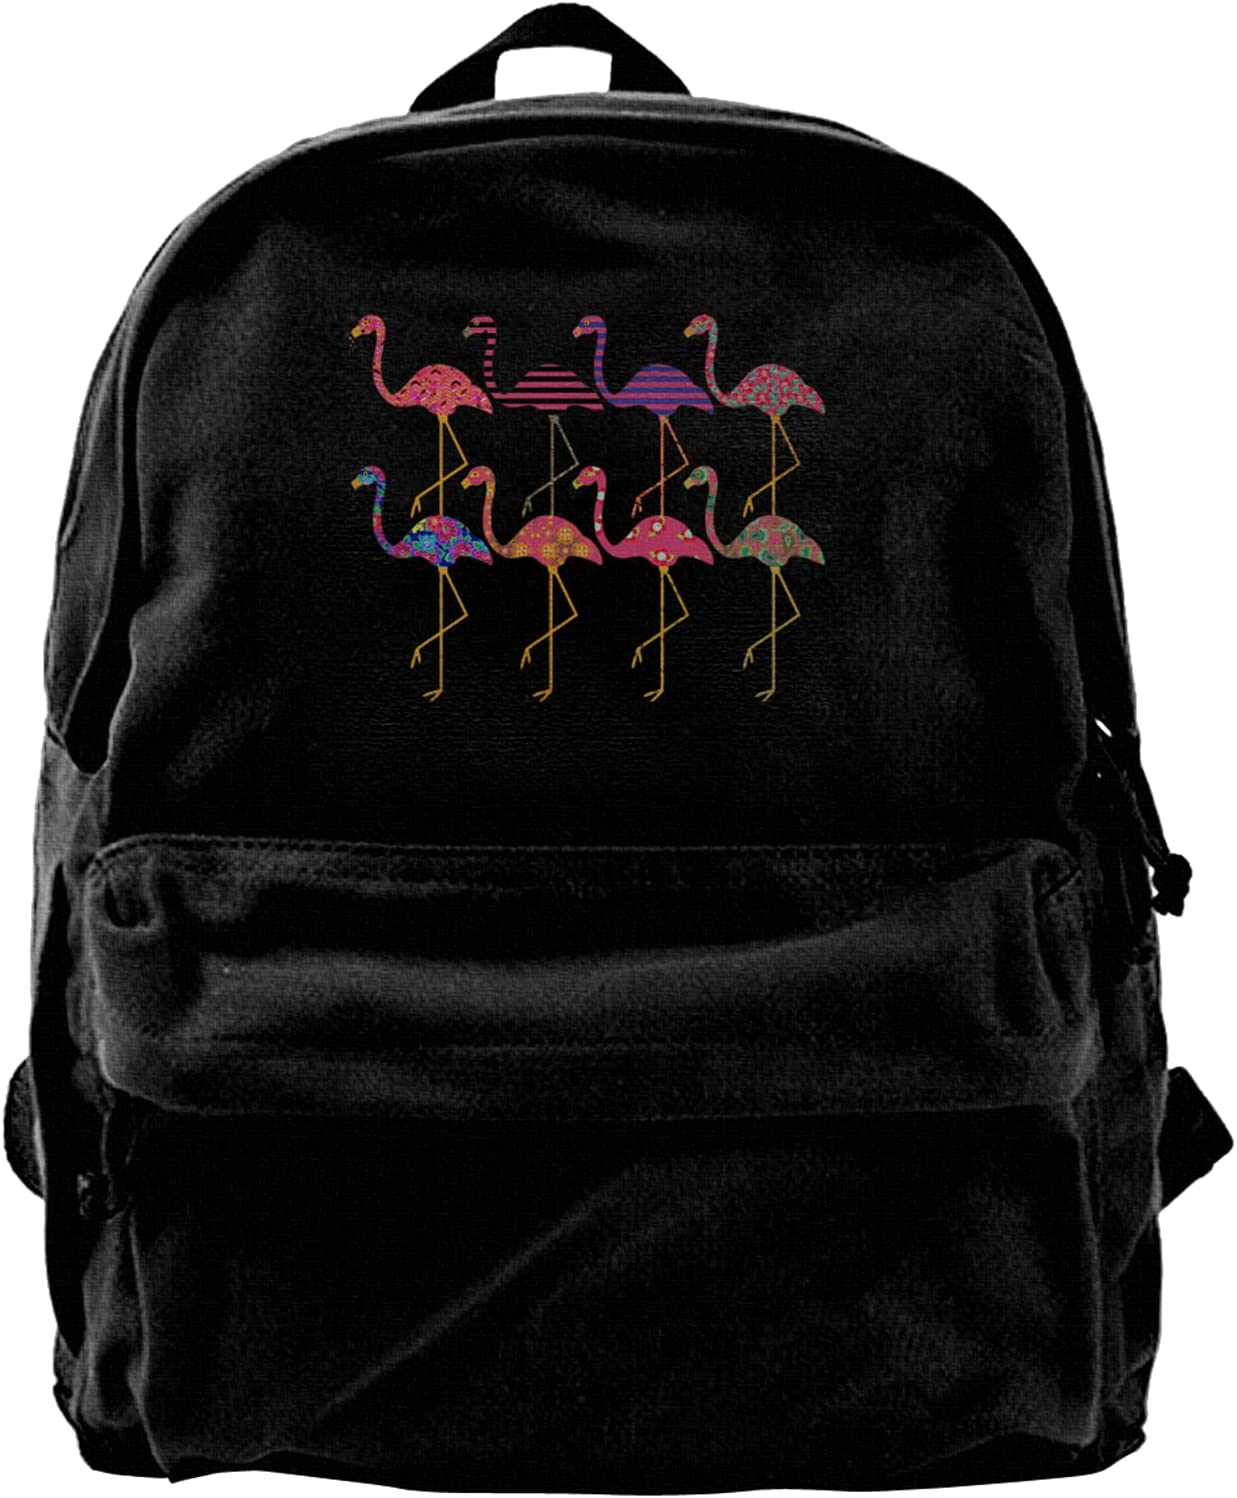 Fancy Flamingos 70% OFF Outlet Canvas Chicago Mall Backpacks Bags High-Capacity Schoo Laptop